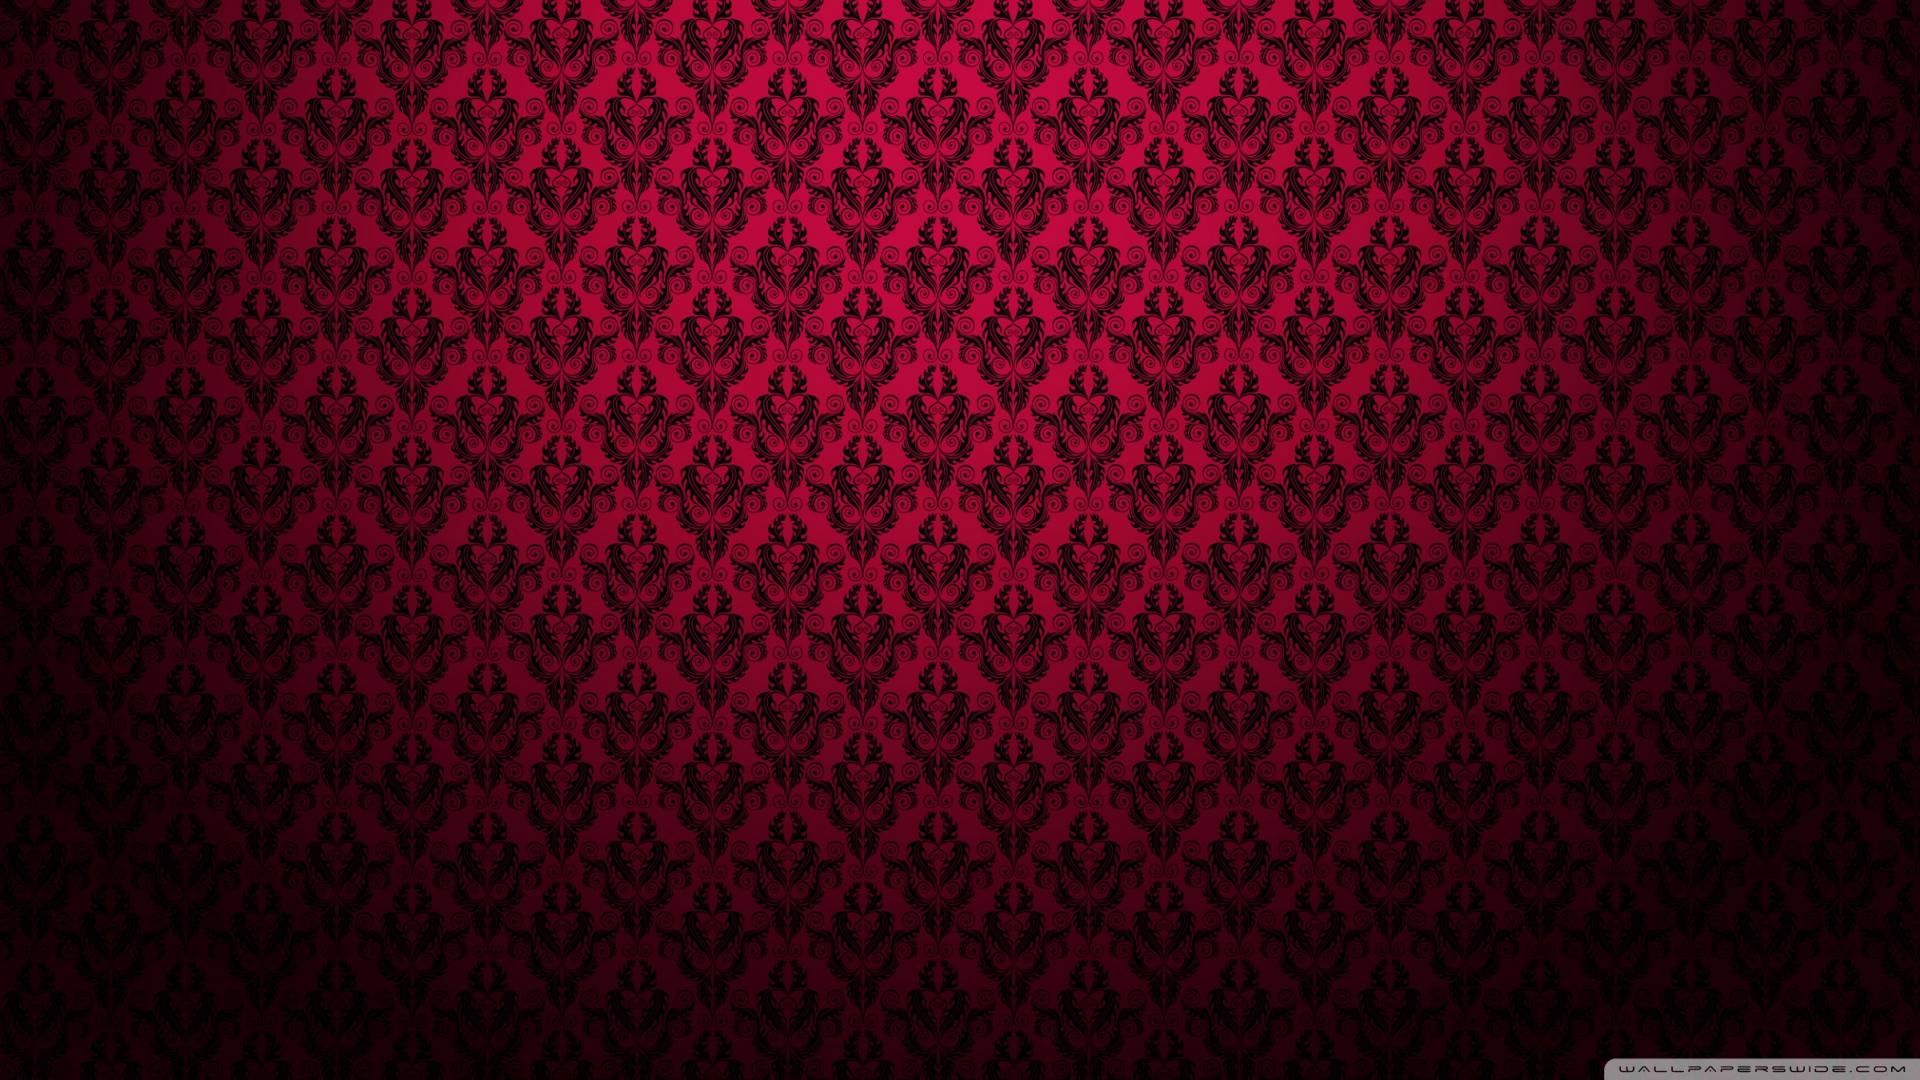 Red And Black Damask Pattern Wallpaper Id 1979 Download Page Pink Damask Wallpaper Red Damask Pattern Wallpaper